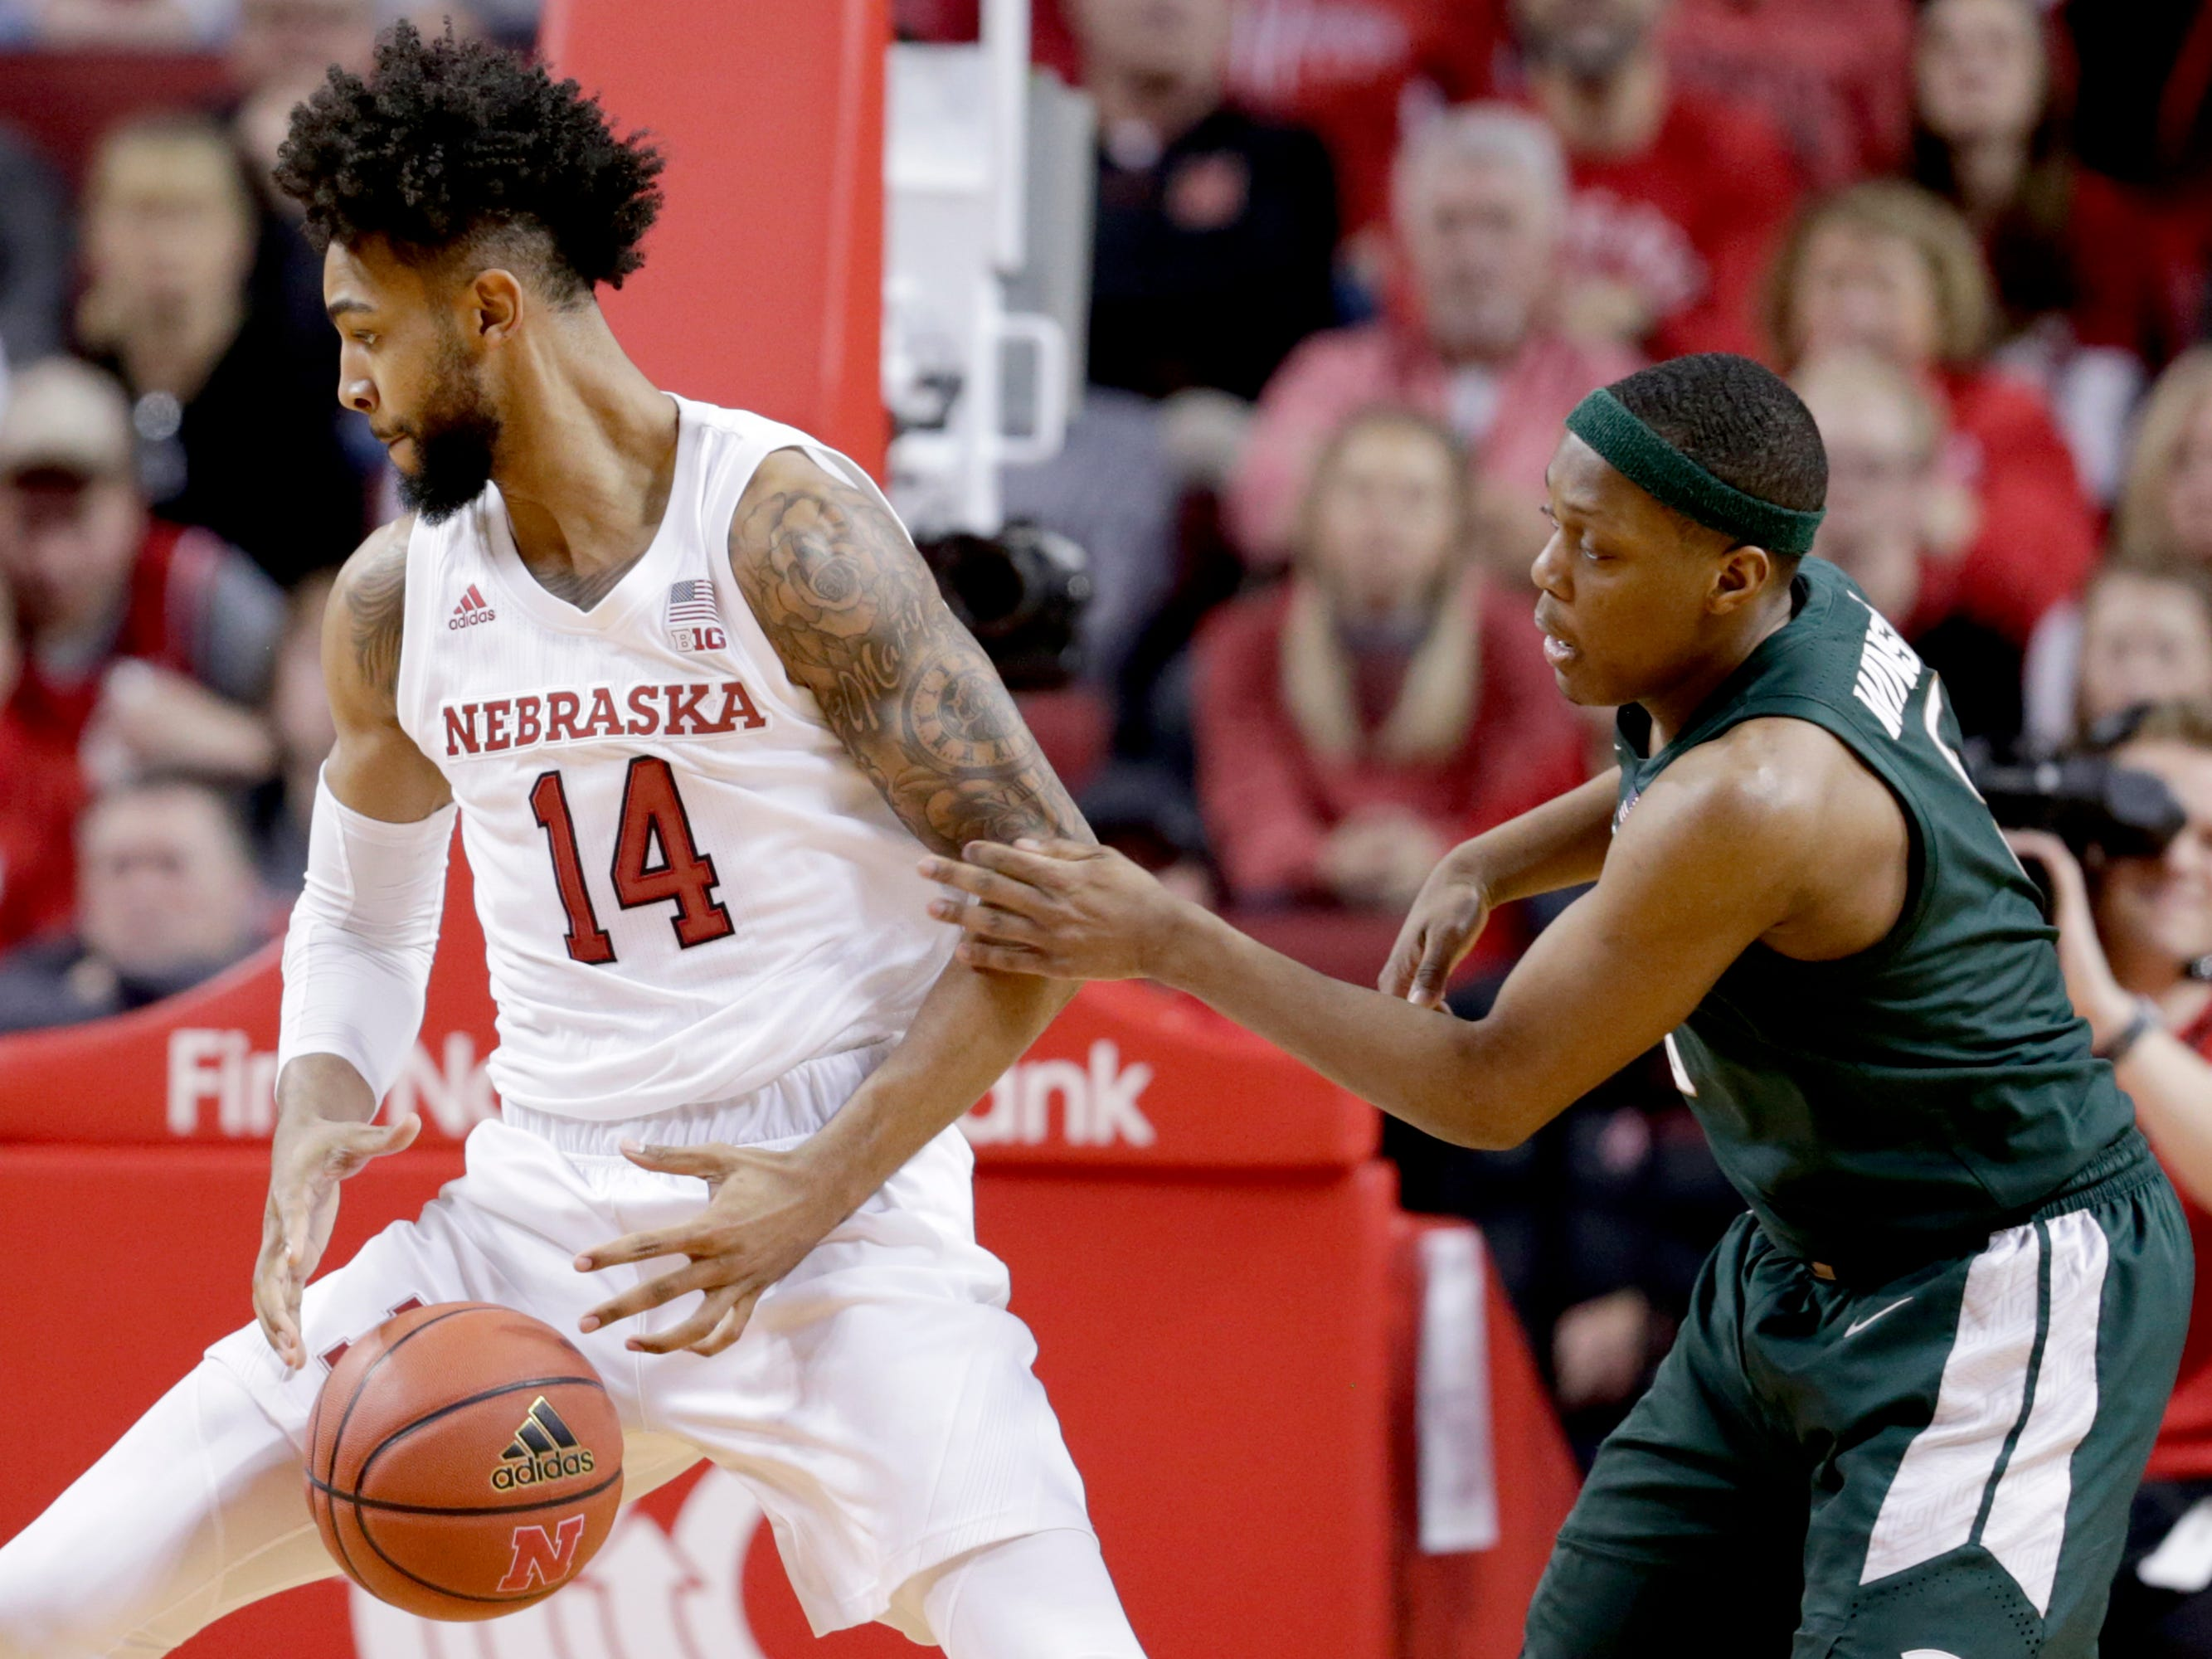 Michigan State's Cassius Winston (5) fouls Nebraska's Isaac Copeland Jr. (14) during the second half of an NCAA college basketball game in Lincoln, Neb., Thursday, Jan. 17, 2019. Michigan State won 70-64.